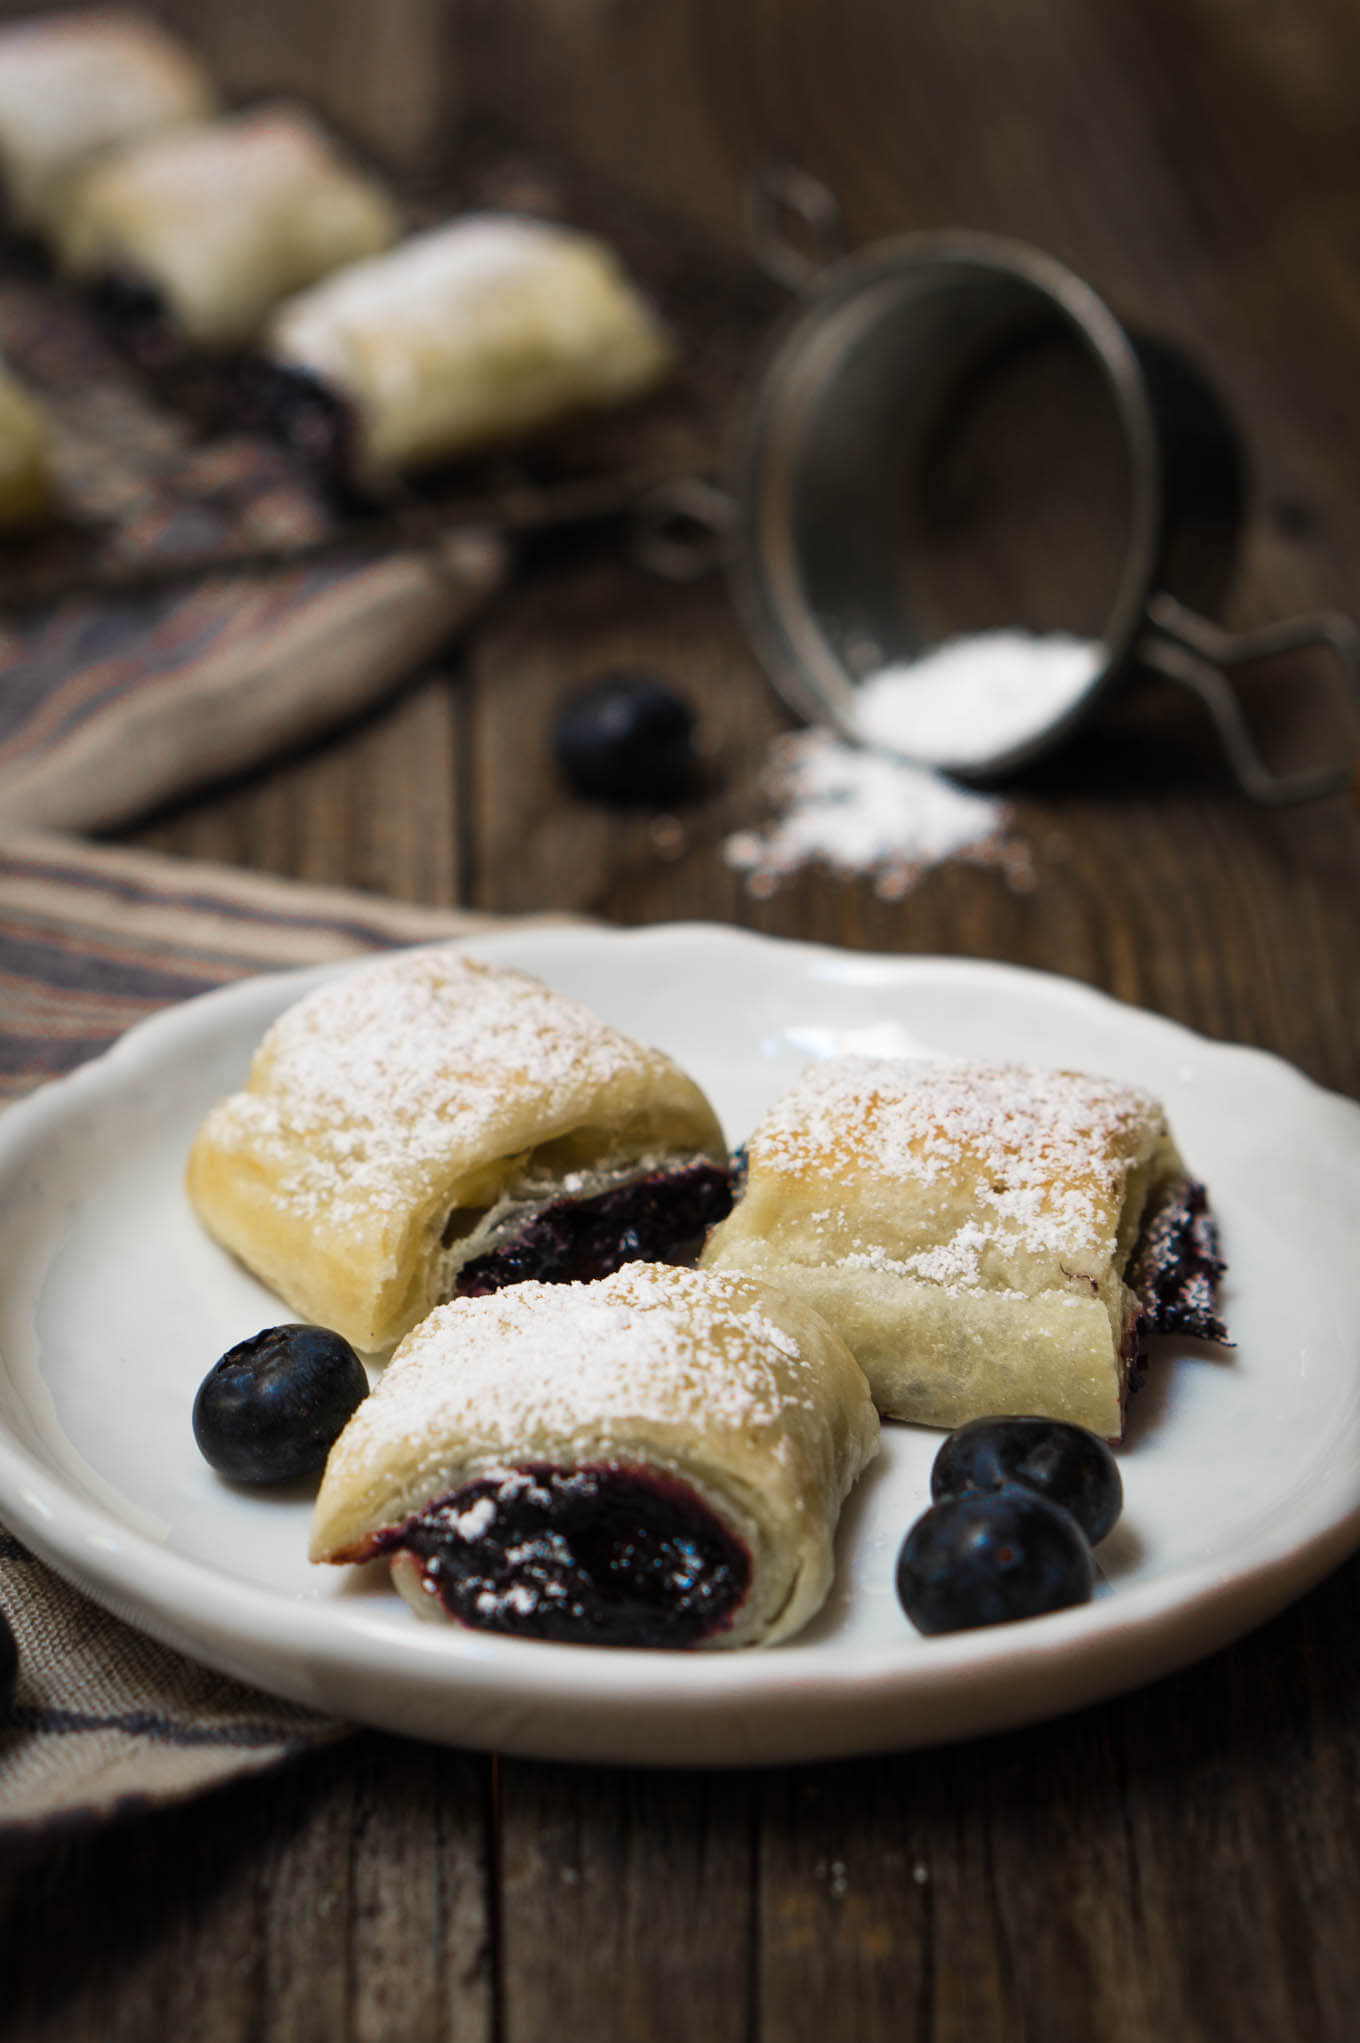 Excellent Blueberry Puff Pastry Rolls Recipe Hostess At Heart Puff Pastry Desserts Plums Peanut Butter Puff Pastry Desserts nice food Puff Pastry Desserts